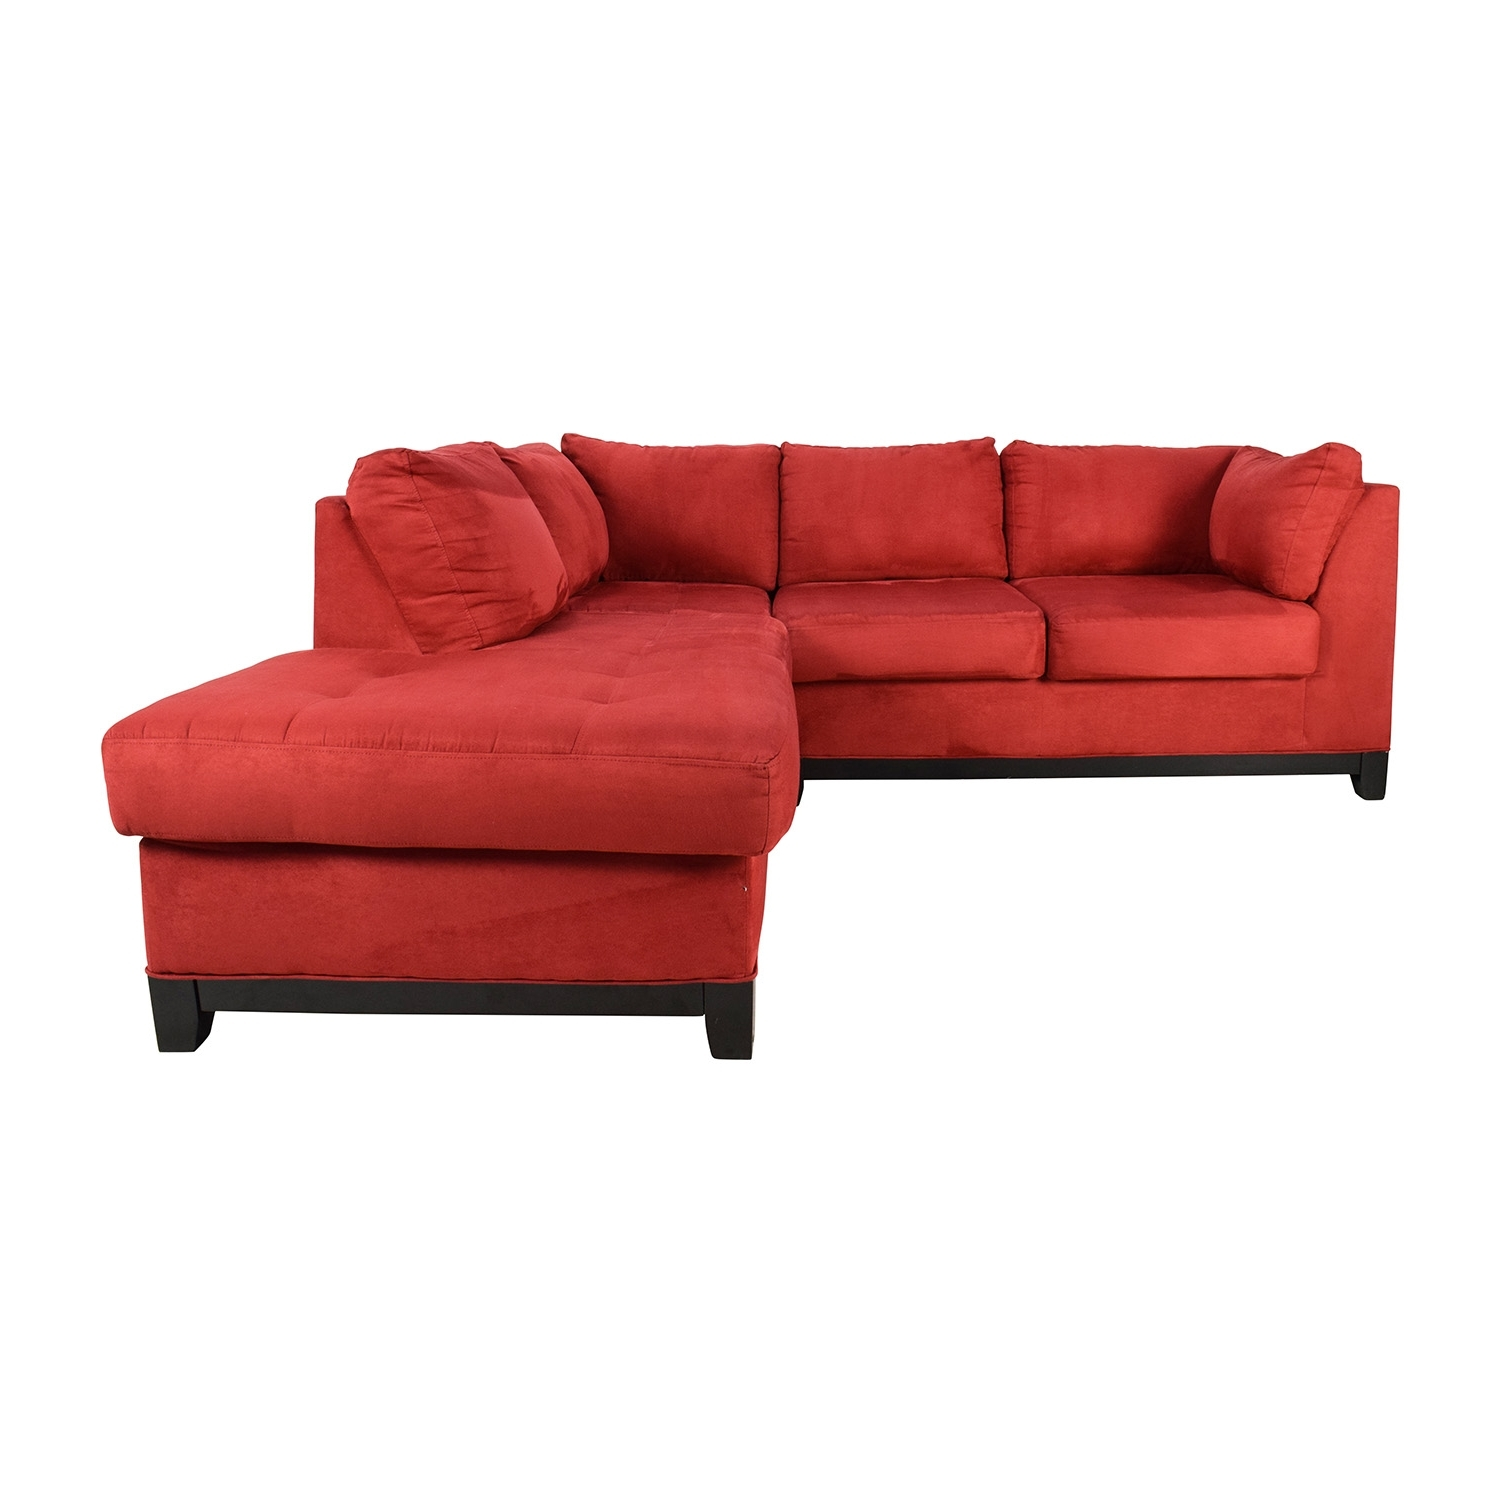 [%67% Off – Raymour And Flanigan Raymour & Flanigan Zella Red Within Well Liked Sectional Sofas At Raymour And Flanigan|sectional Sofas At Raymour And Flanigan Within Most Recent 67% Off – Raymour And Flanigan Raymour & Flanigan Zella Red|recent Sectional Sofas At Raymour And Flanigan Pertaining To 67% Off – Raymour And Flanigan Raymour & Flanigan Zella Red|most Up To Date 67% Off – Raymour And Flanigan Raymour & Flanigan Zella Red In Sectional Sofas At Raymour And Flanigan%] (View 4 of 20)